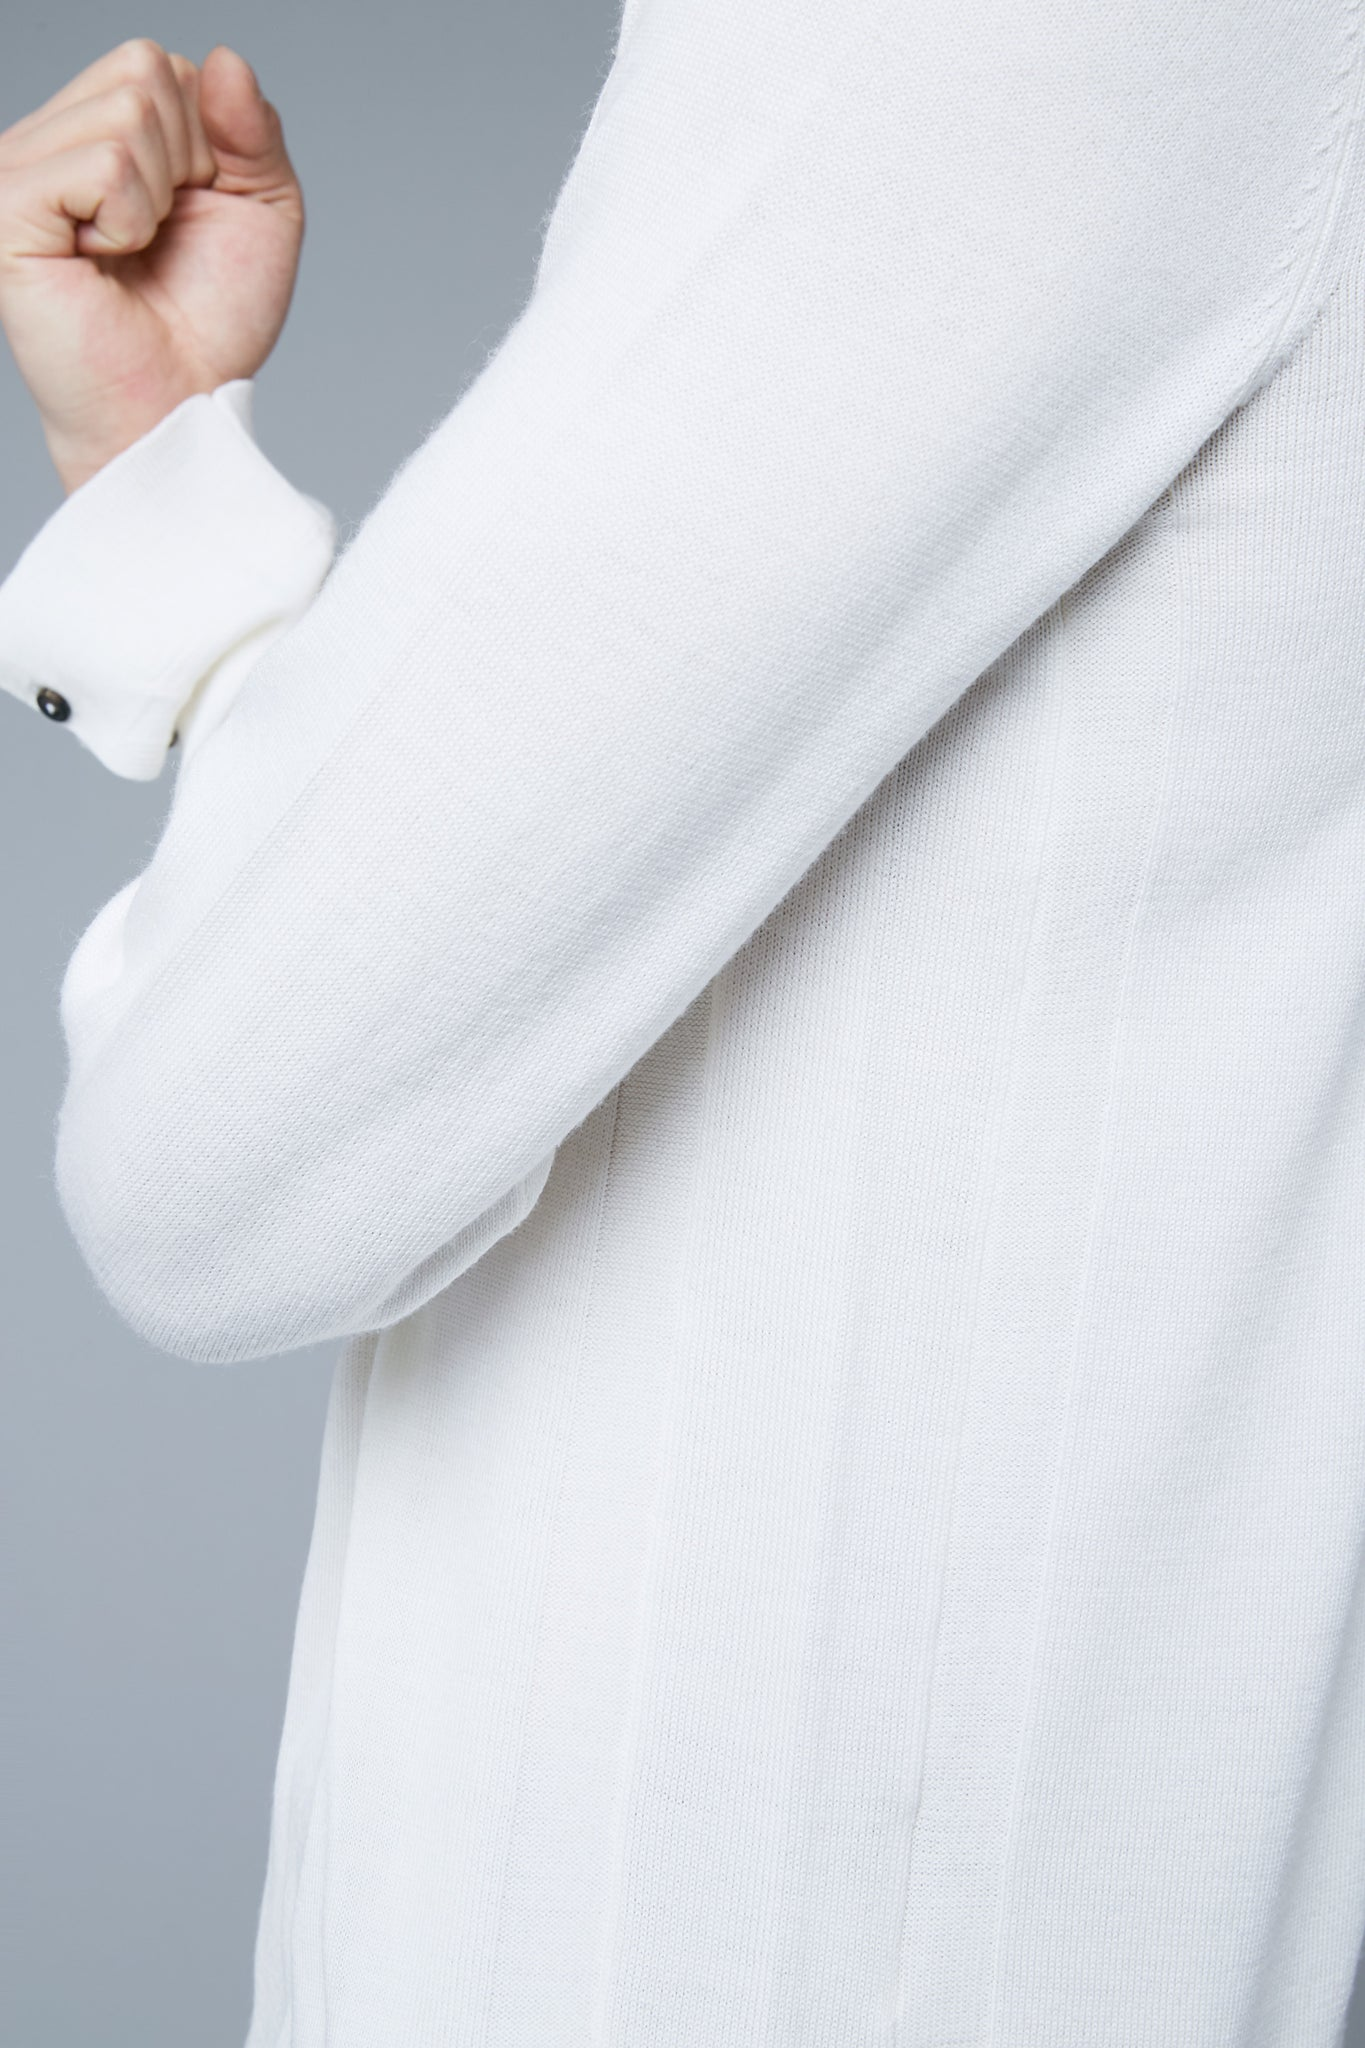 Detail View: Model Qiang Li wearing Long Sleeve Sweater Tee